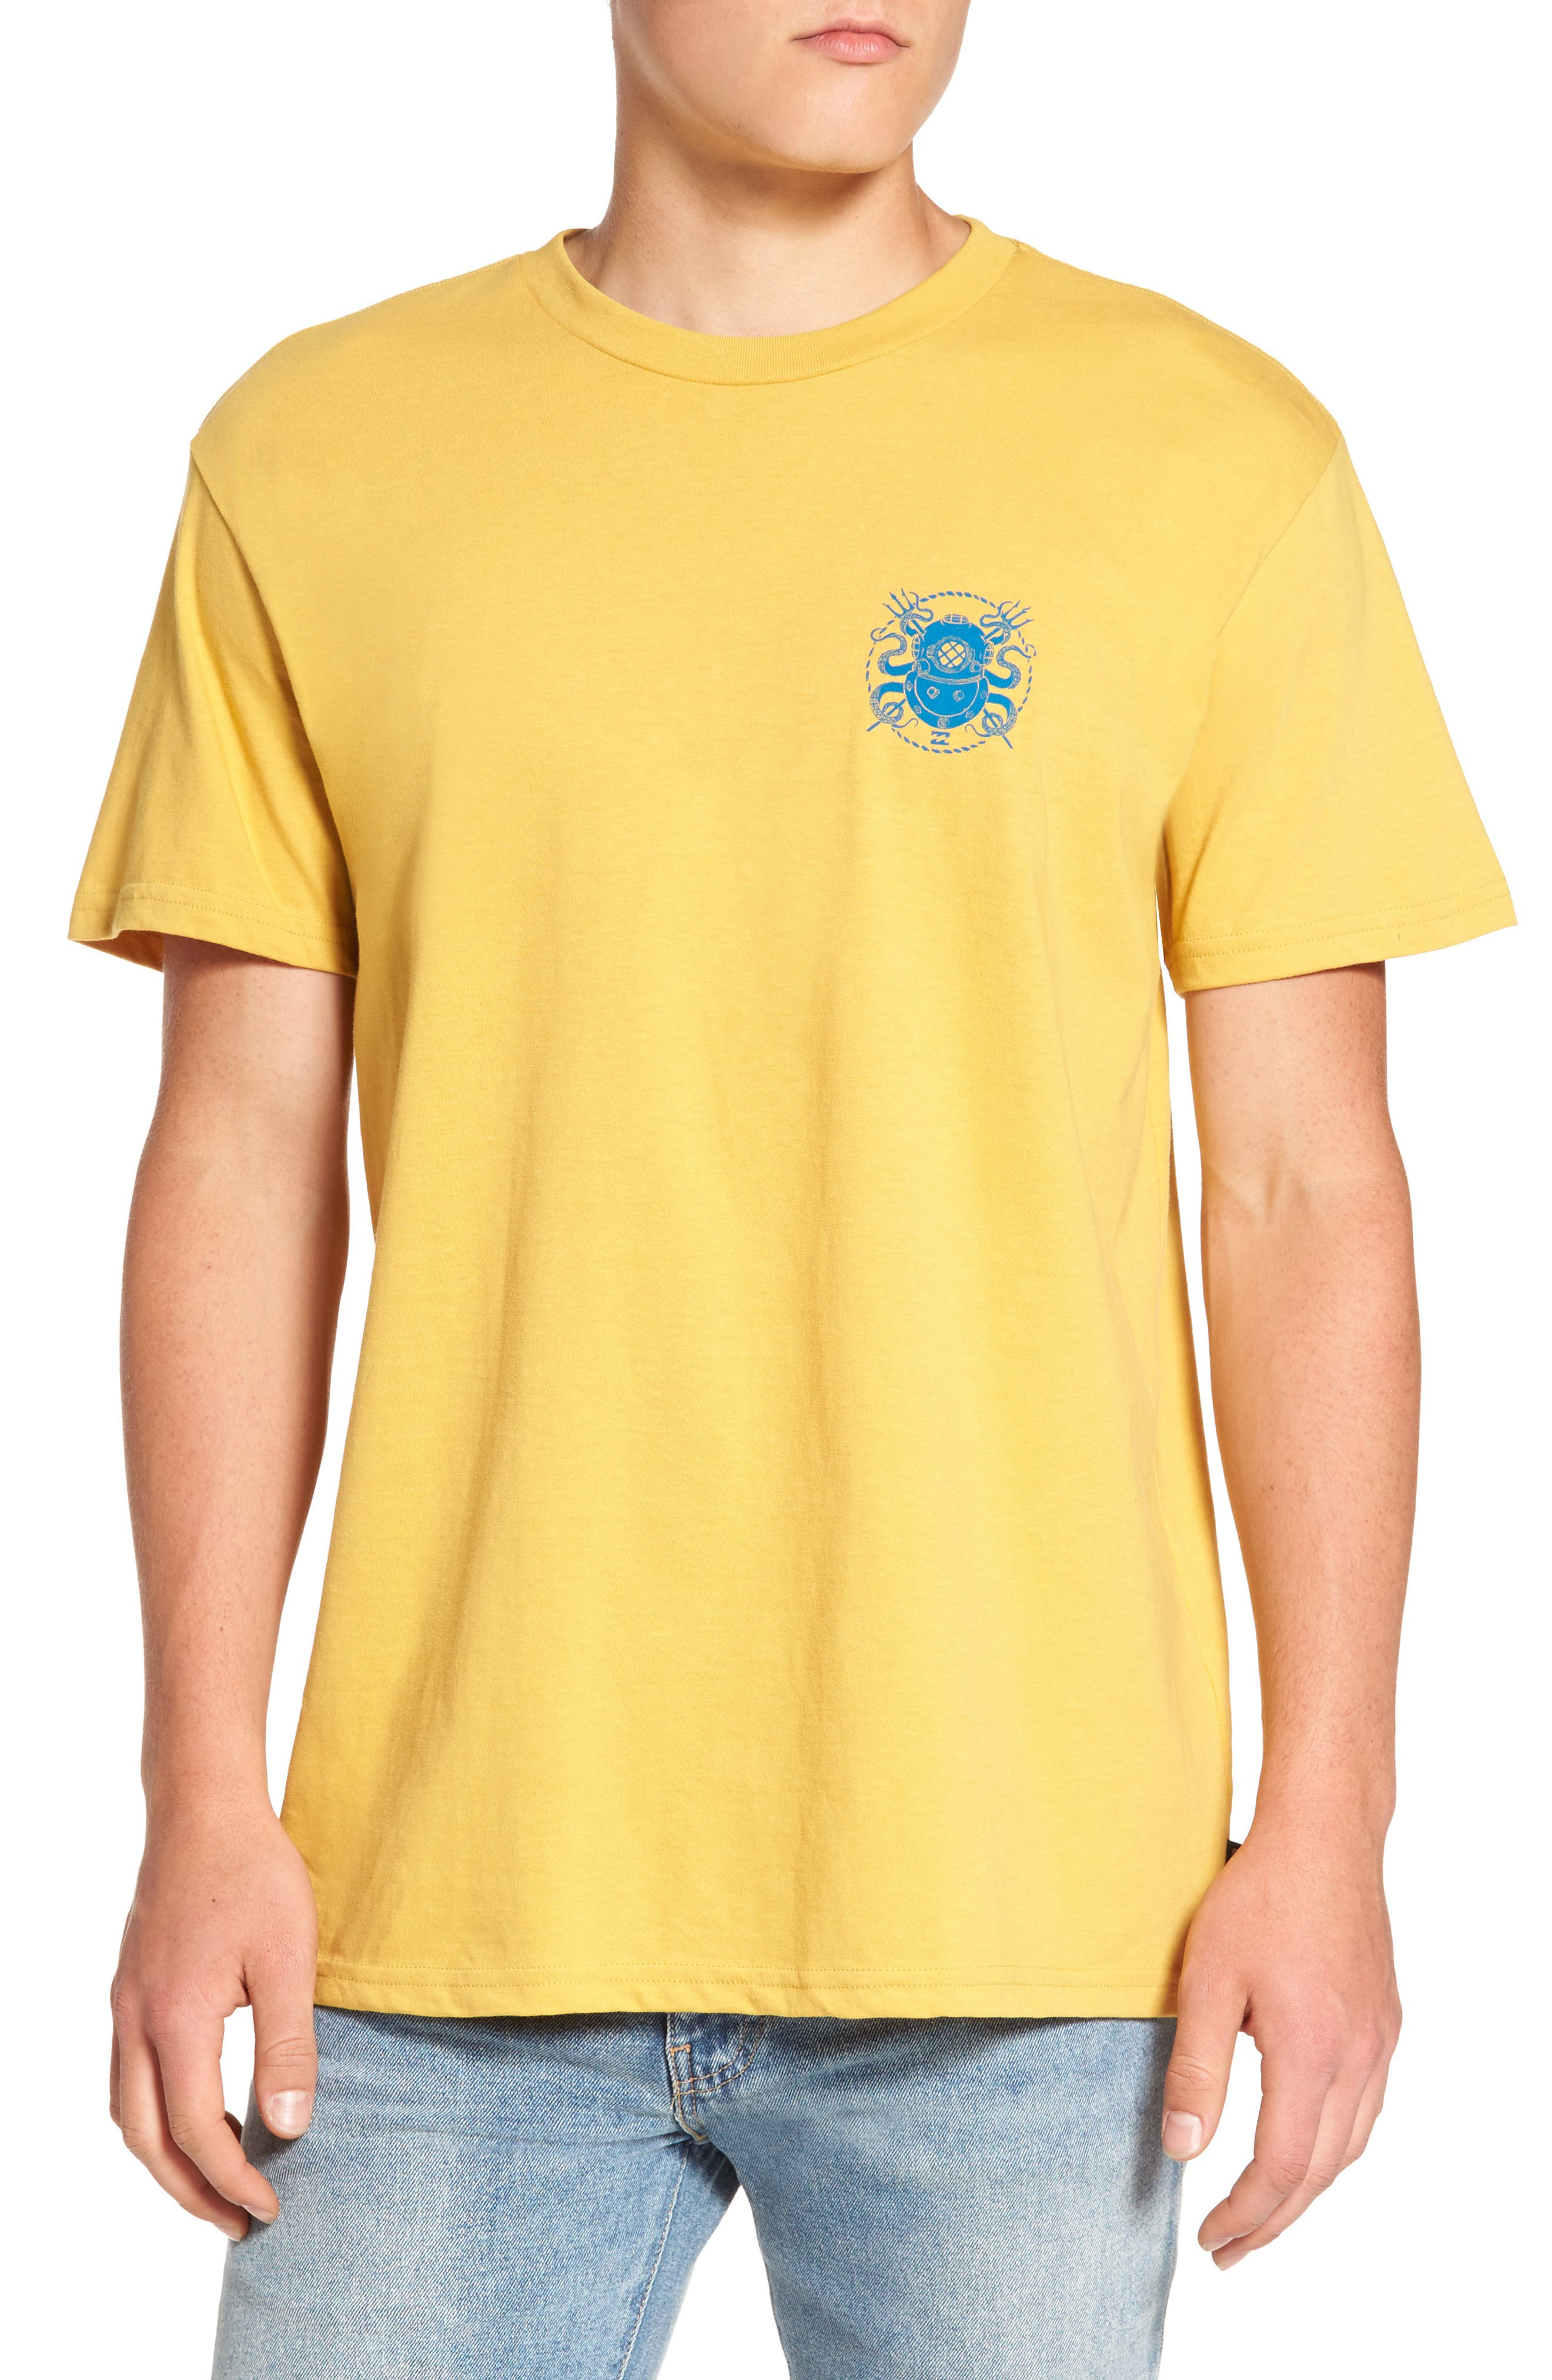 Alternate Image 1 Selected - Billabong Diver Graphic T-Shirt